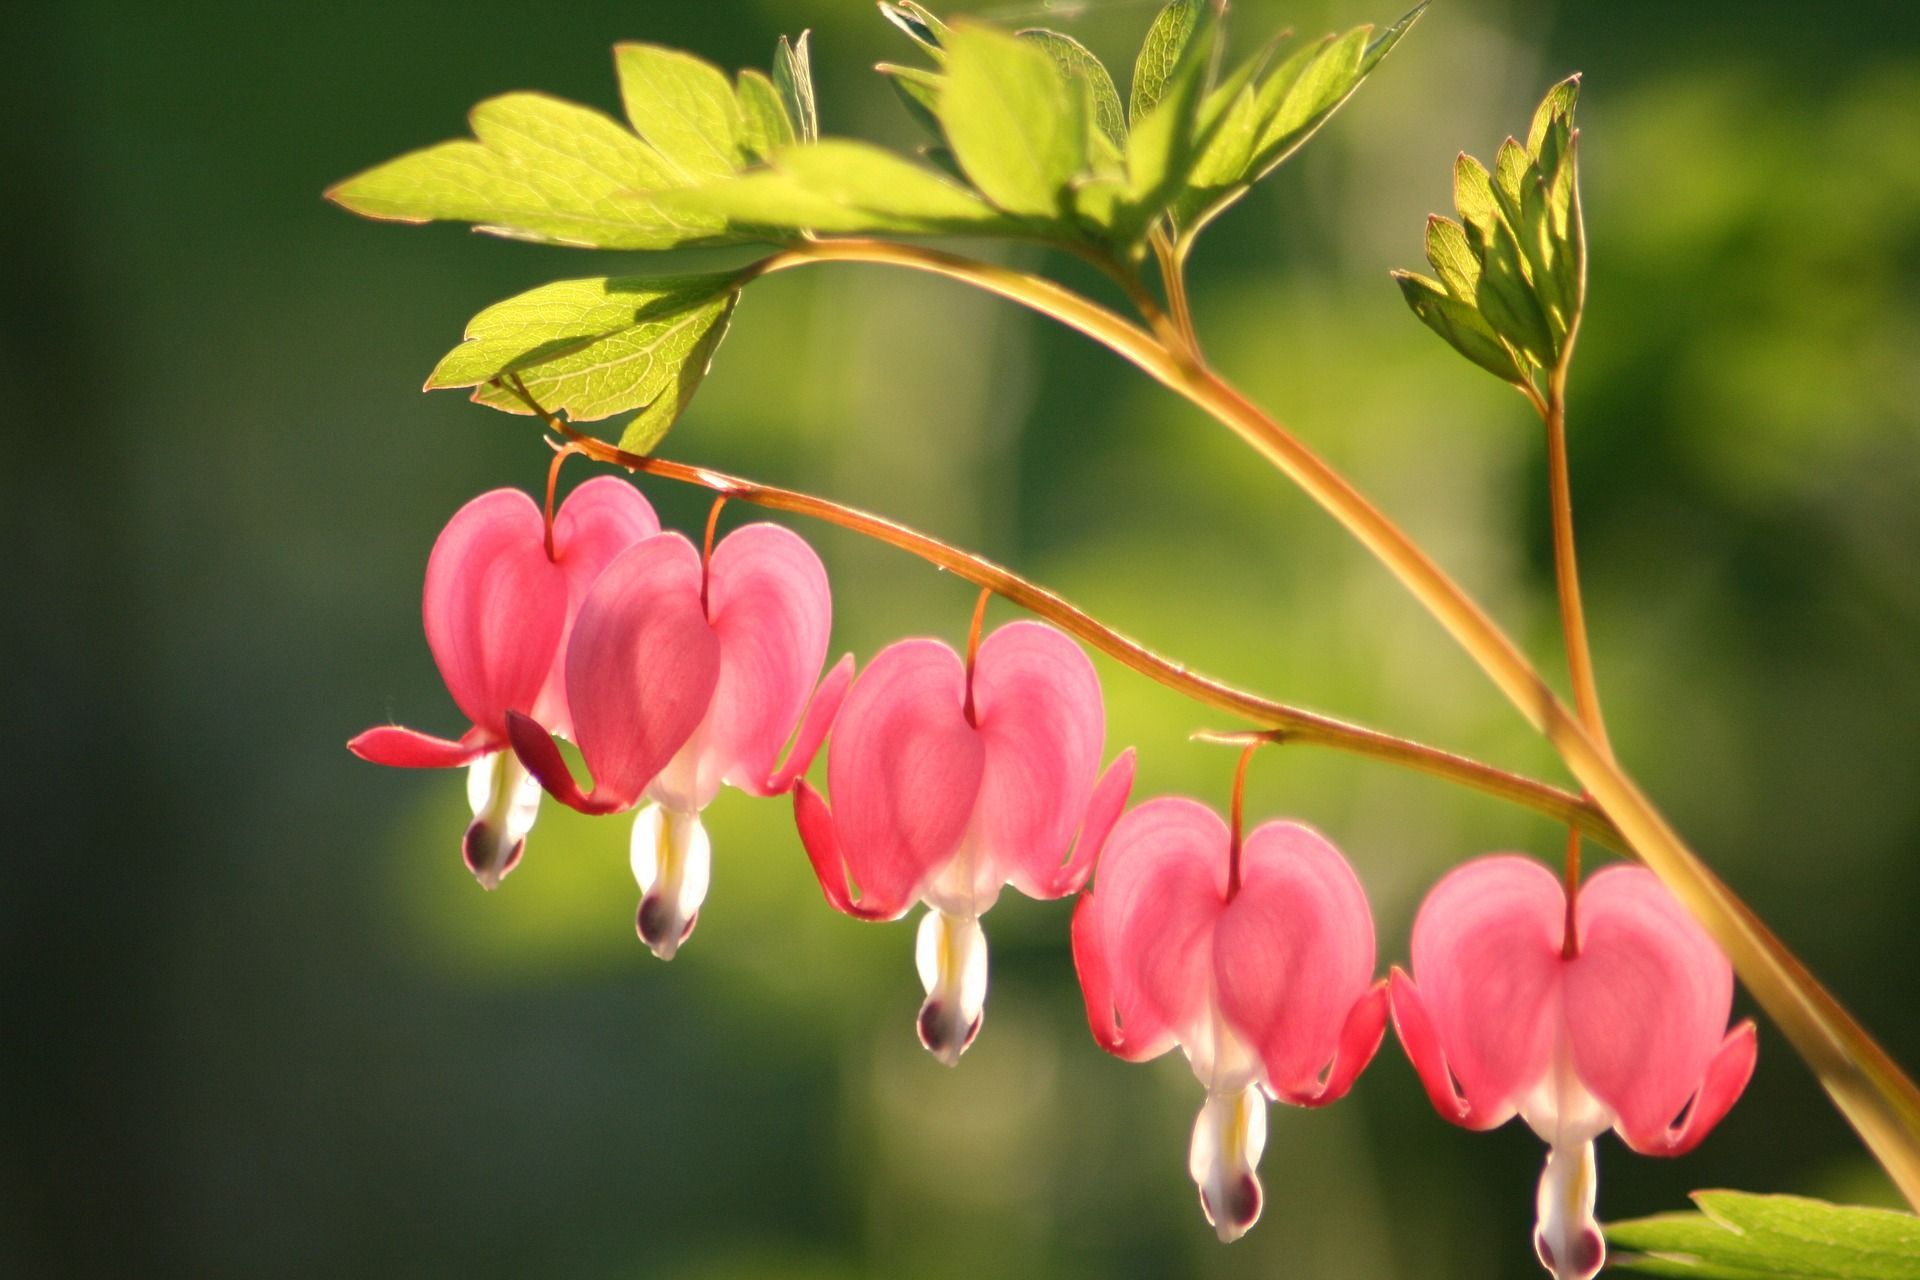 Will You Be Our Valentine Love Plants Bleeding Heart Flower Flowers That Attract Hummingbirds Bleeding Heart